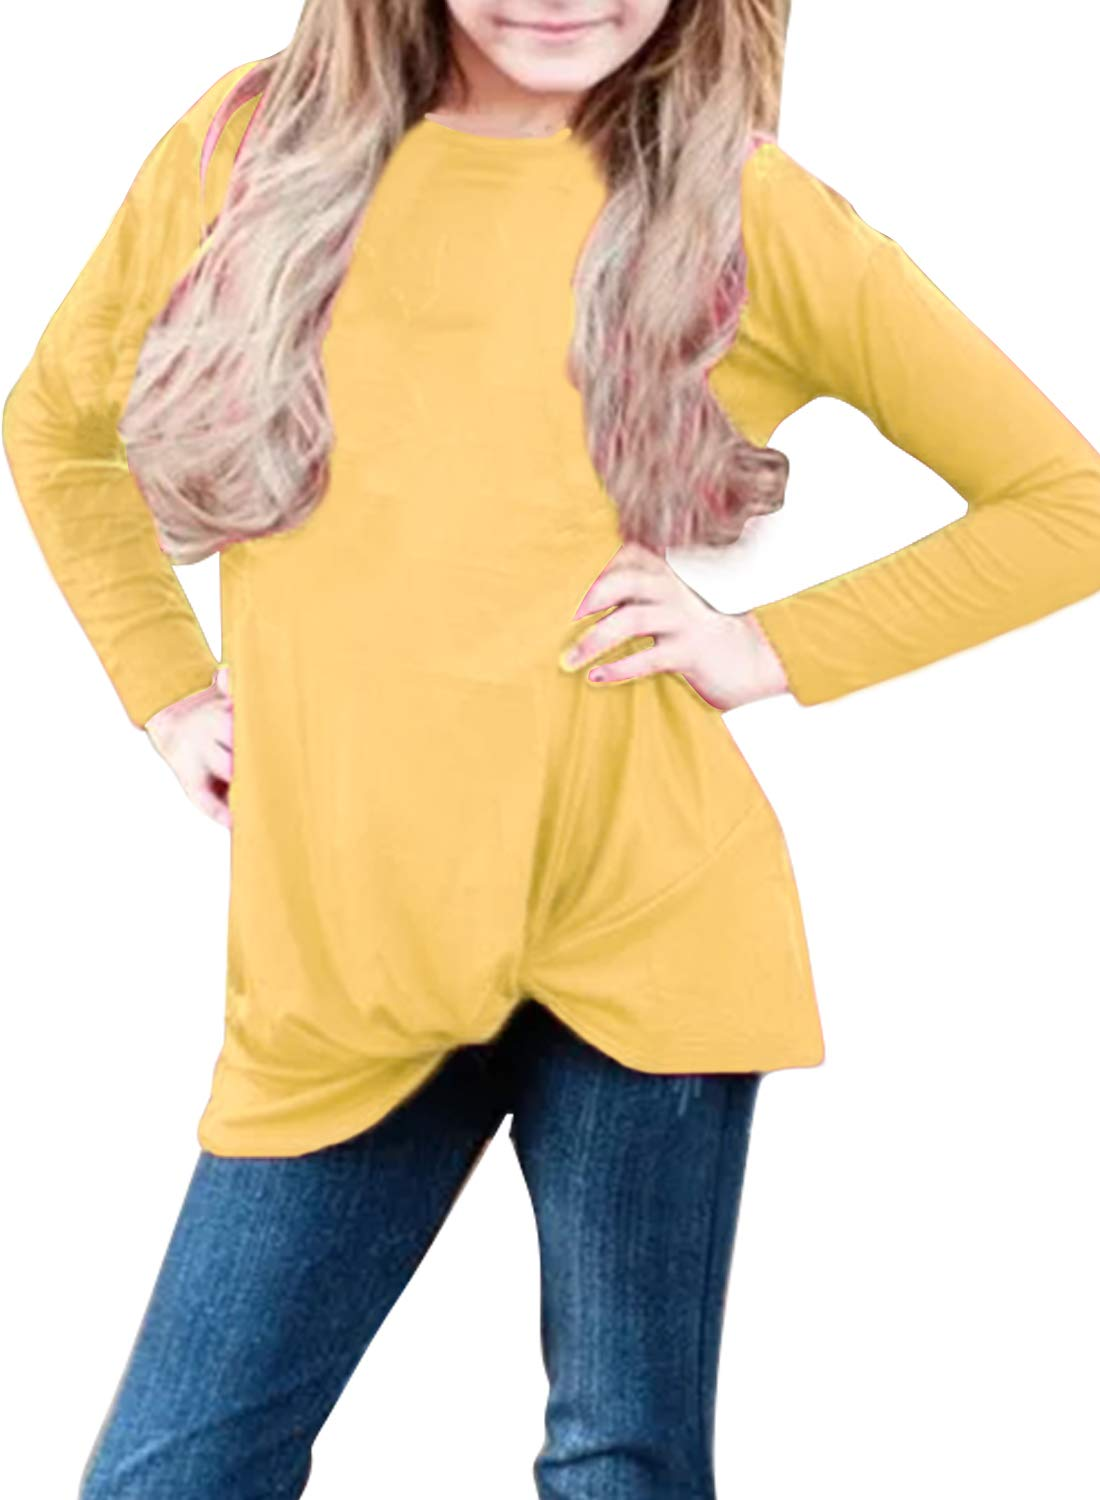 Bulawoo Girls Clothing Casual Long Sleeve Knot Front Tunic Tops Blouse Little Girls Loose Fashion Tee Shirts Size 4-5 Yellow